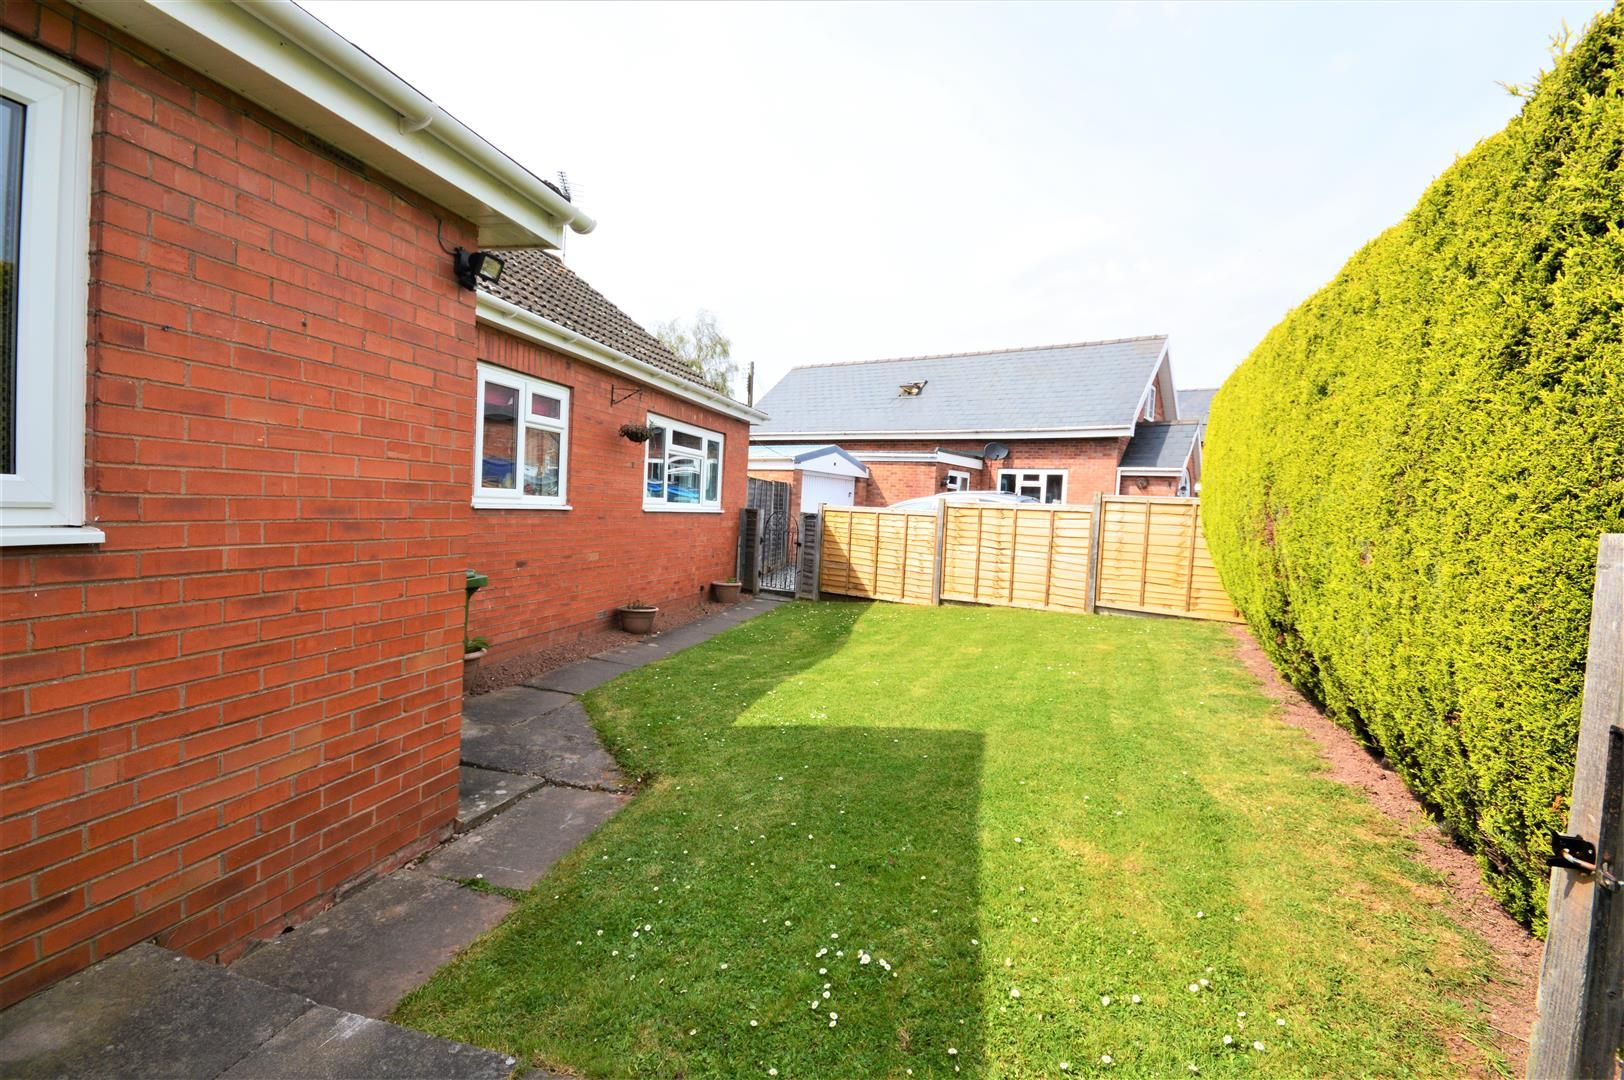 4 bed detached-bungalow for sale in Marden  - Property Image 17